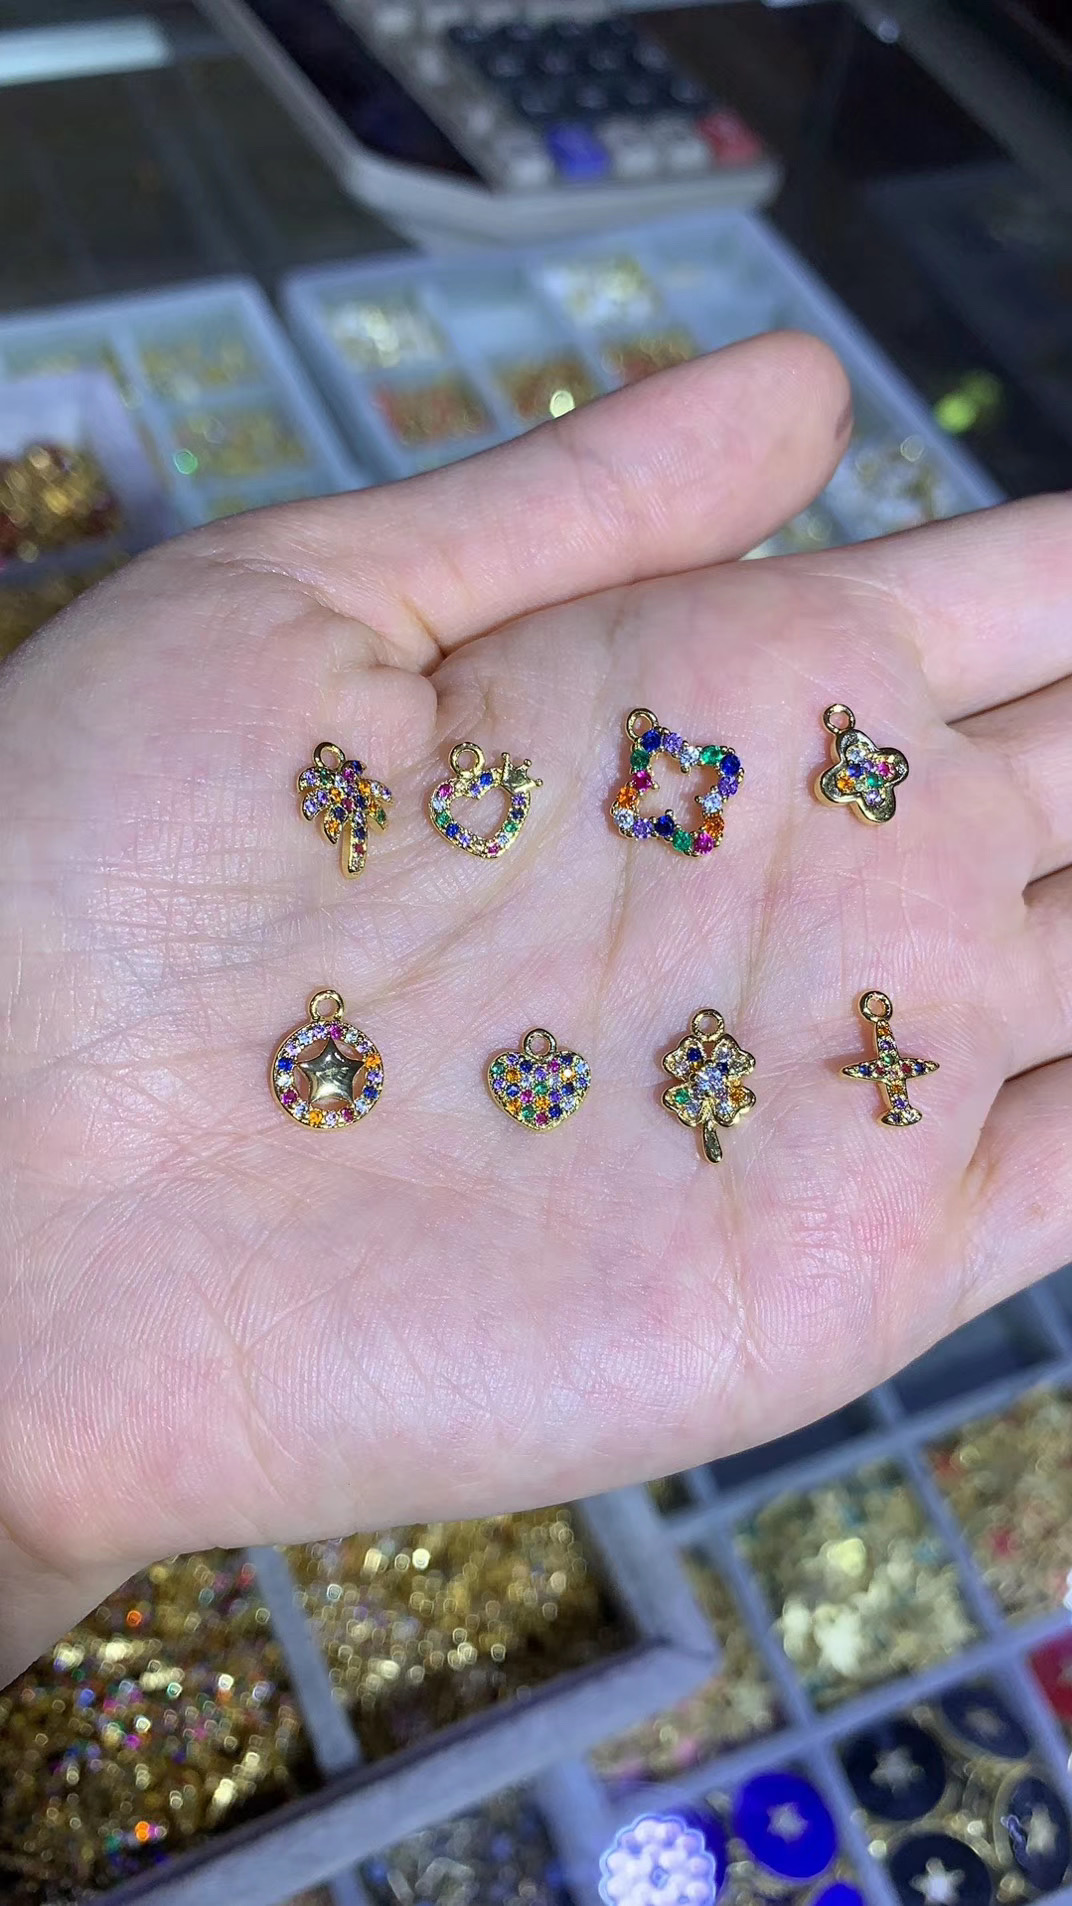 Wholesale Rainbow Small Zircon Boy and Girl Pendant Necklace Fit Making DIY Freedom Jewelry Gifts For Girls